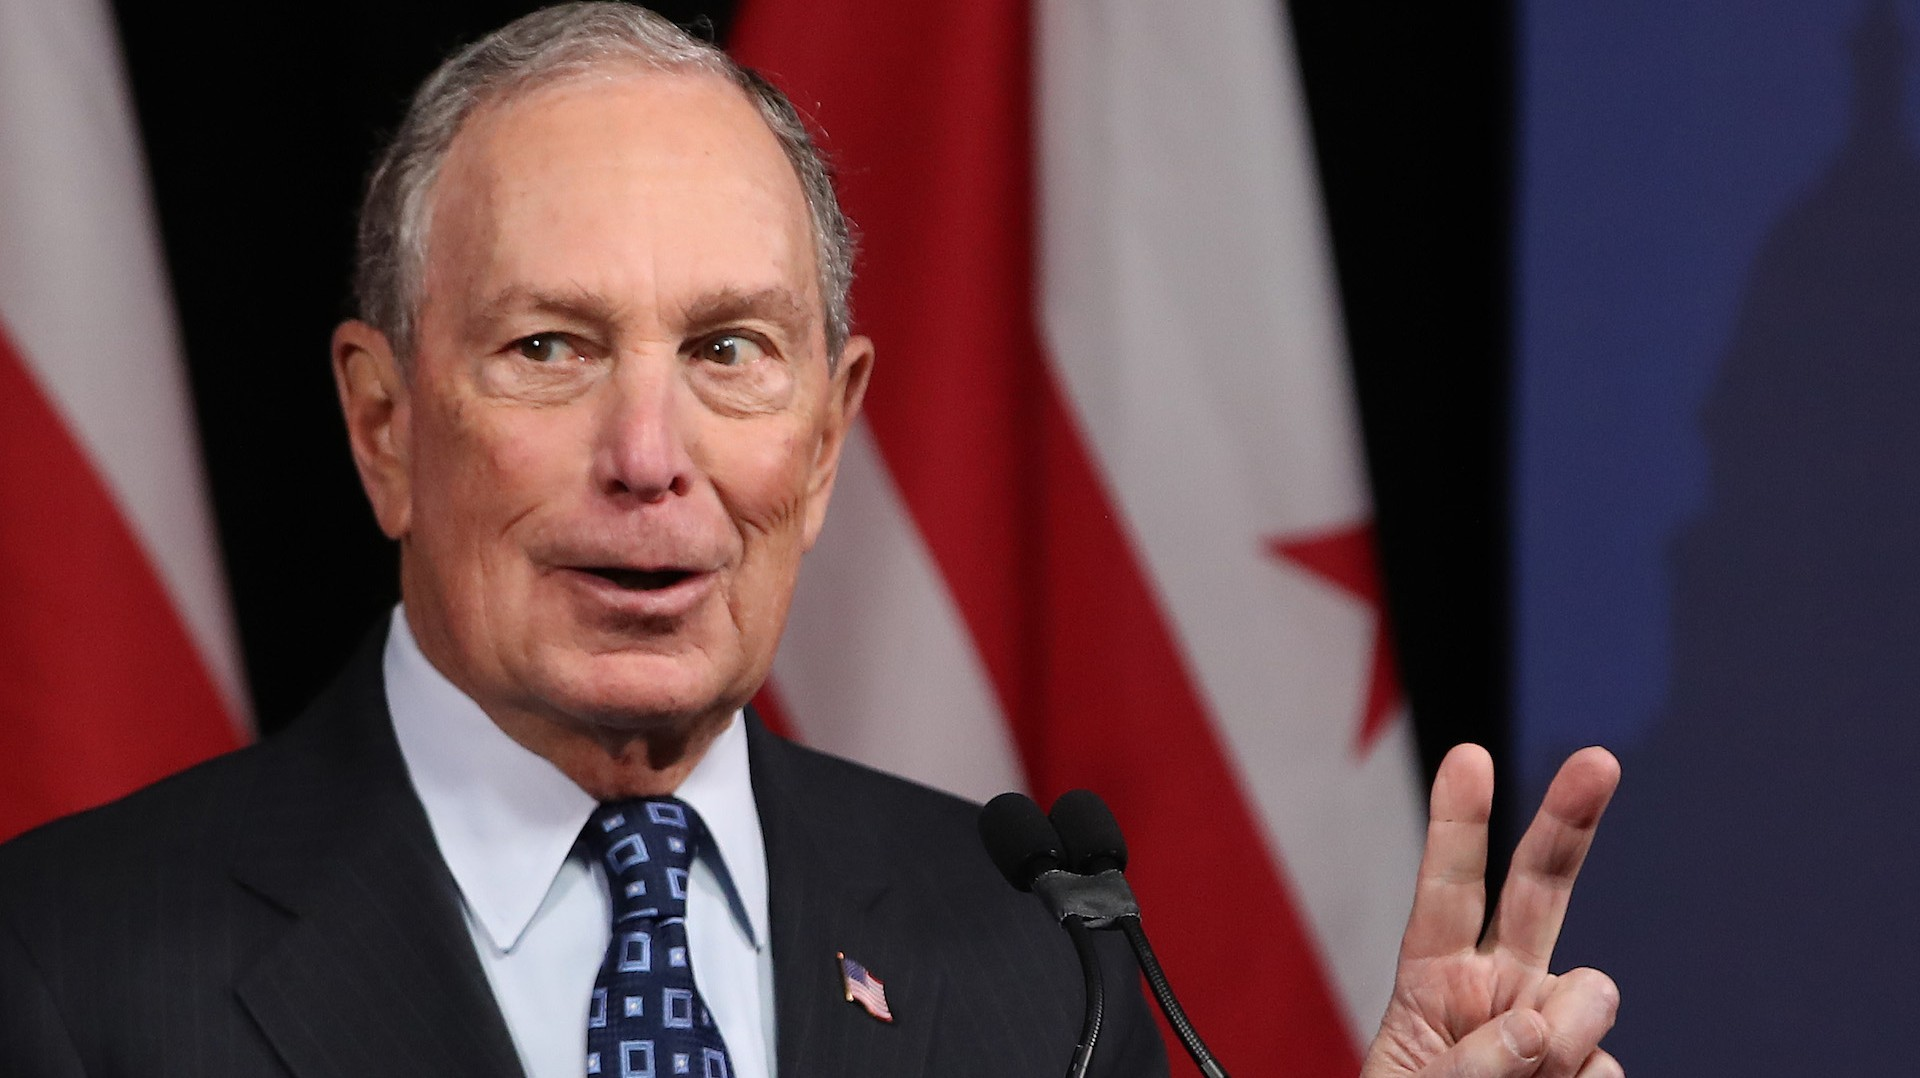 , Mike Bloomberg Gave the DNC $300K Two Days Before He Entered the 2020 Race, Saubio Making Wealth